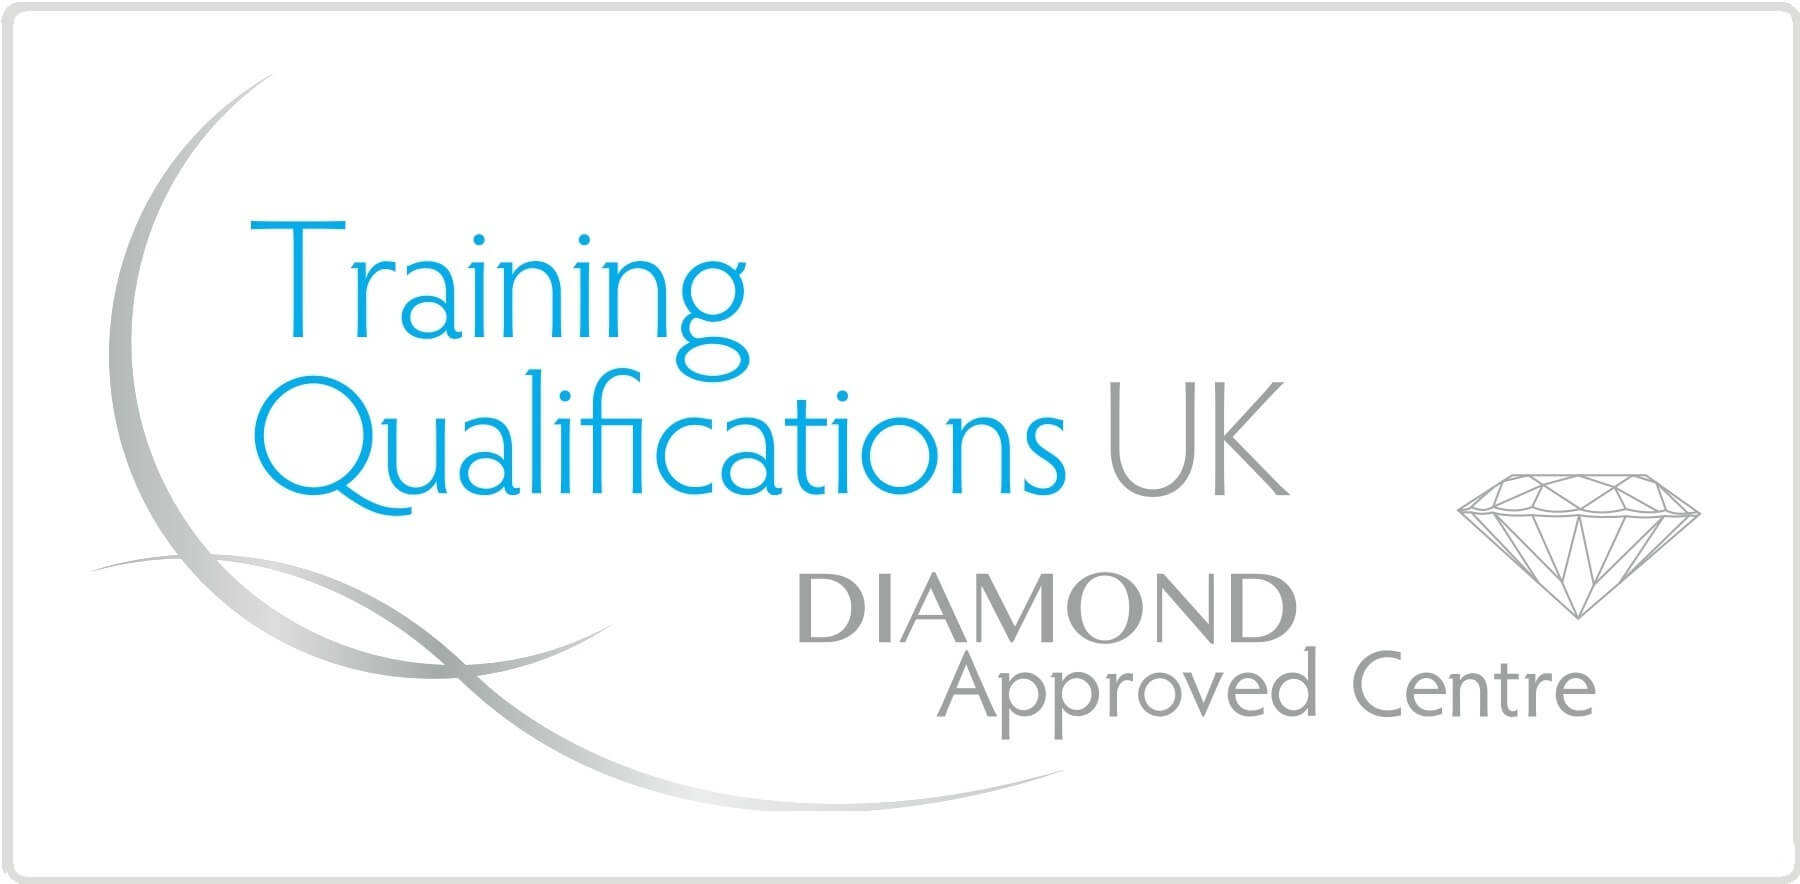 Diamond approved centre logo